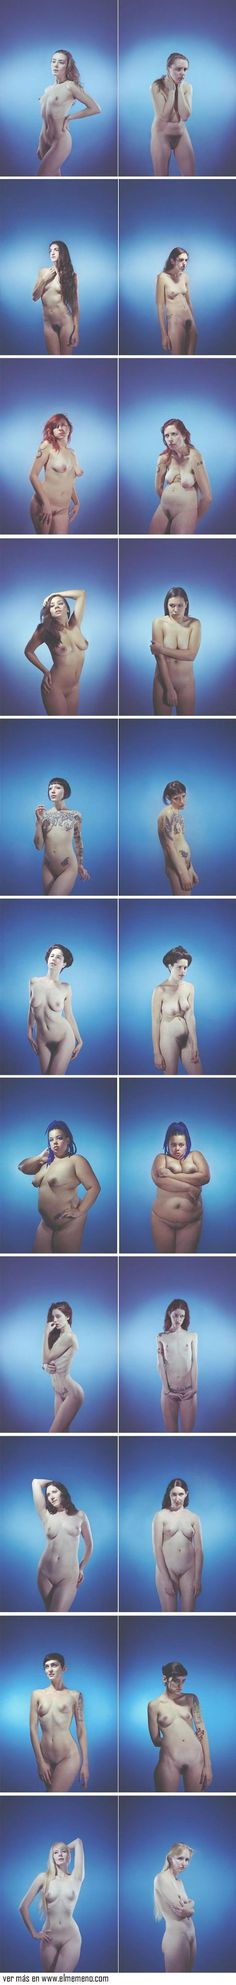 photographer Gracie Hagen demonstrates how posture affects body image